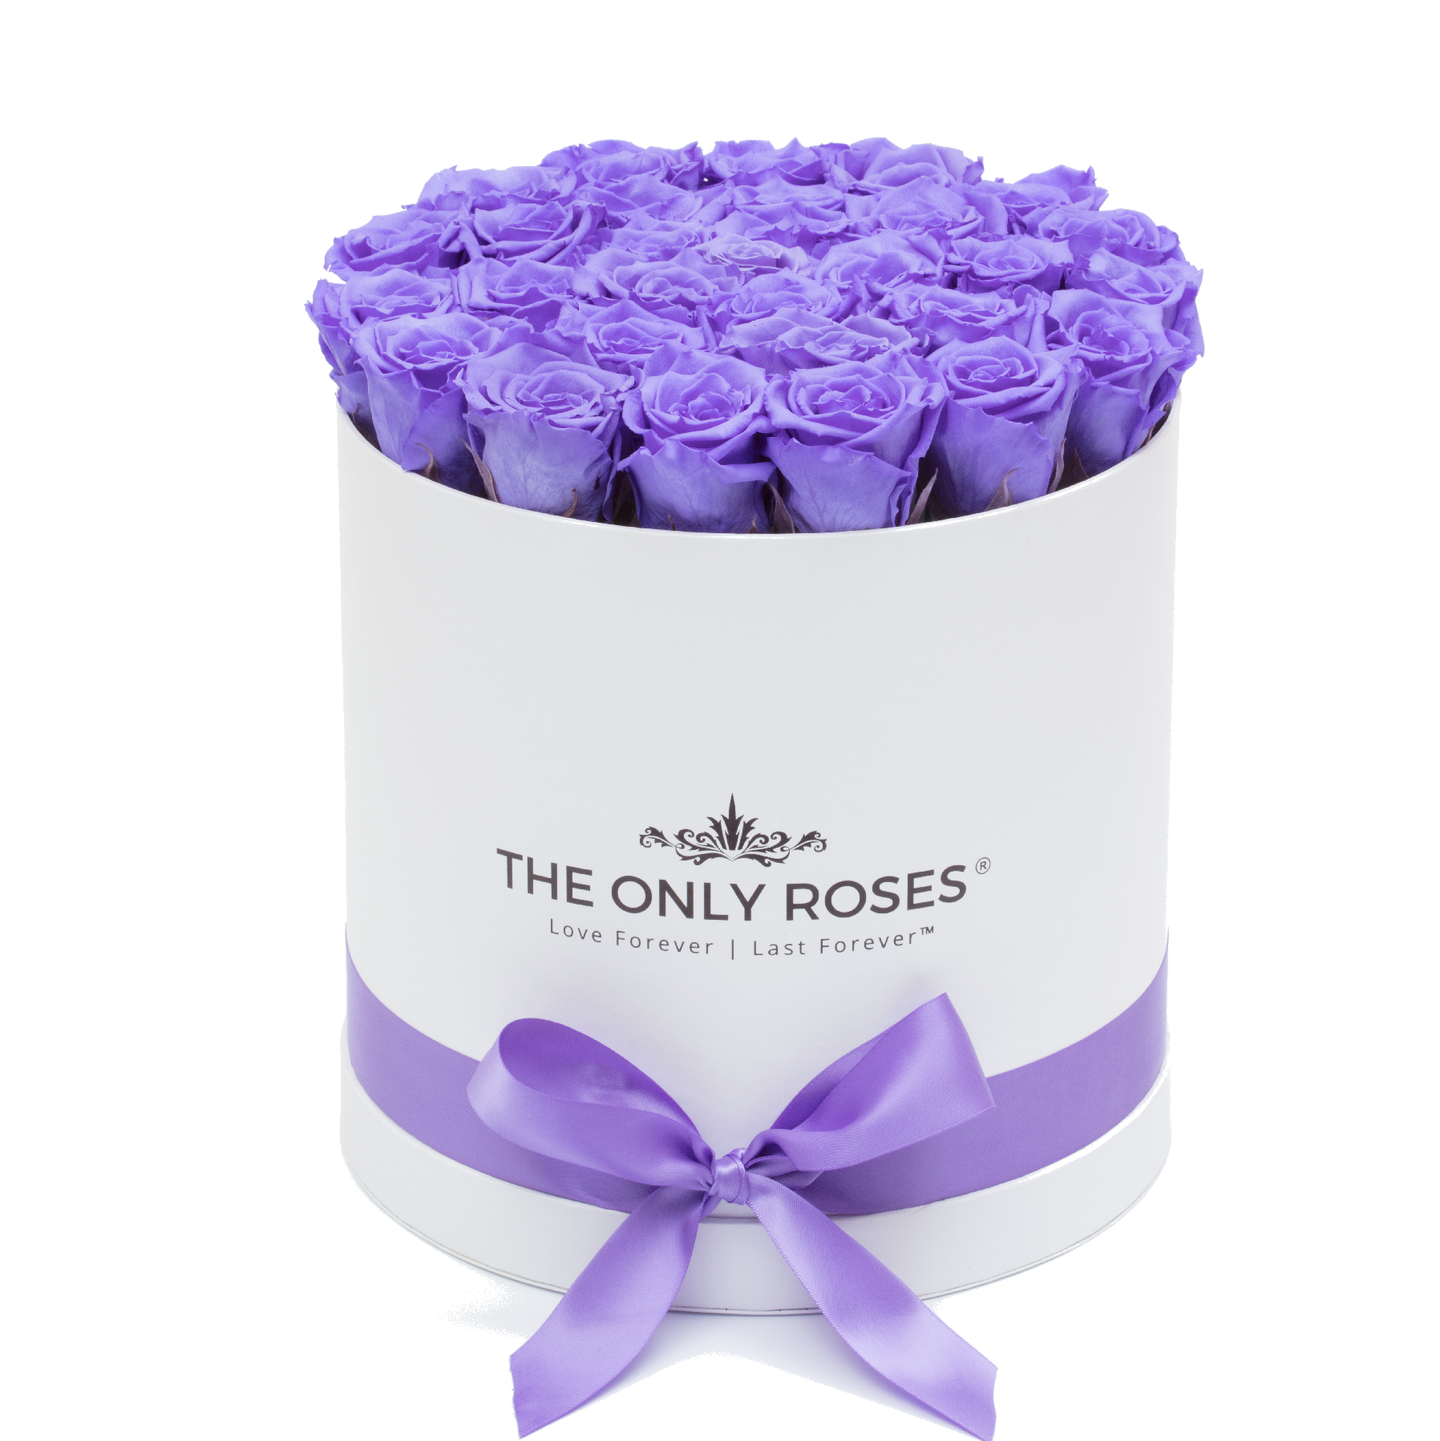 Purple Preserved Roses | Medium Round White Huggy Rose Box - The Only Roses